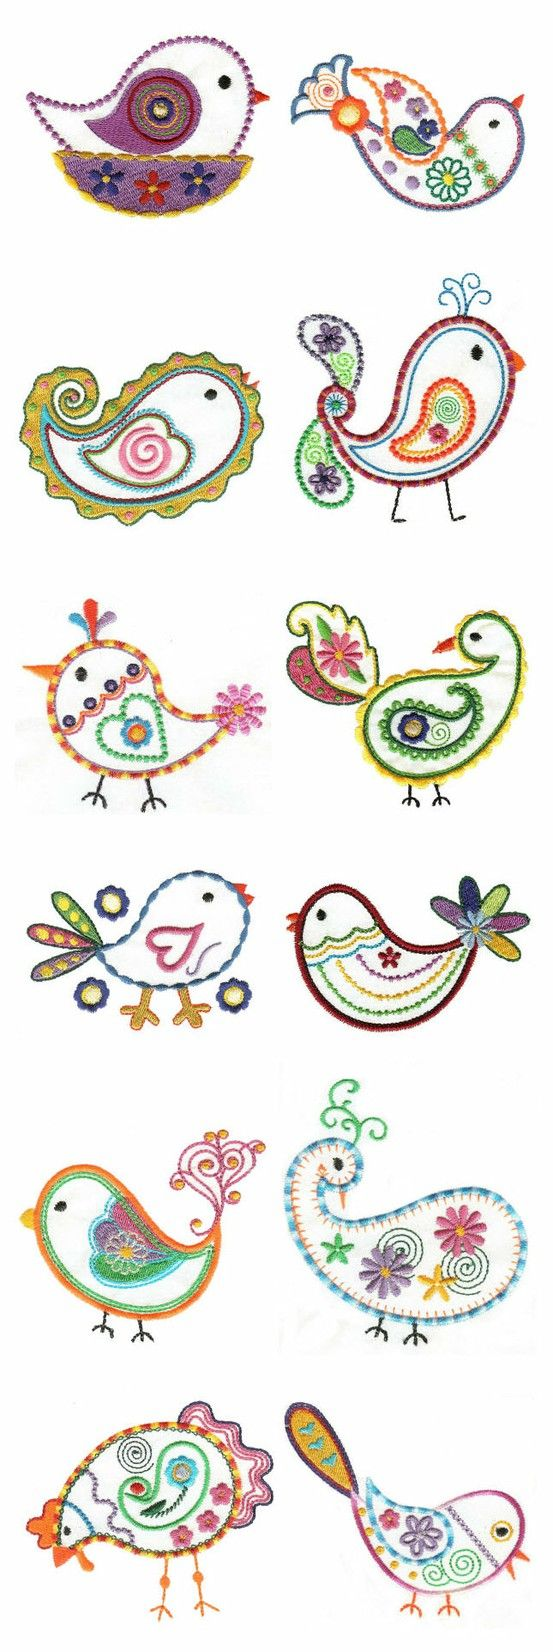 Embroidered birdies. YES!!!!